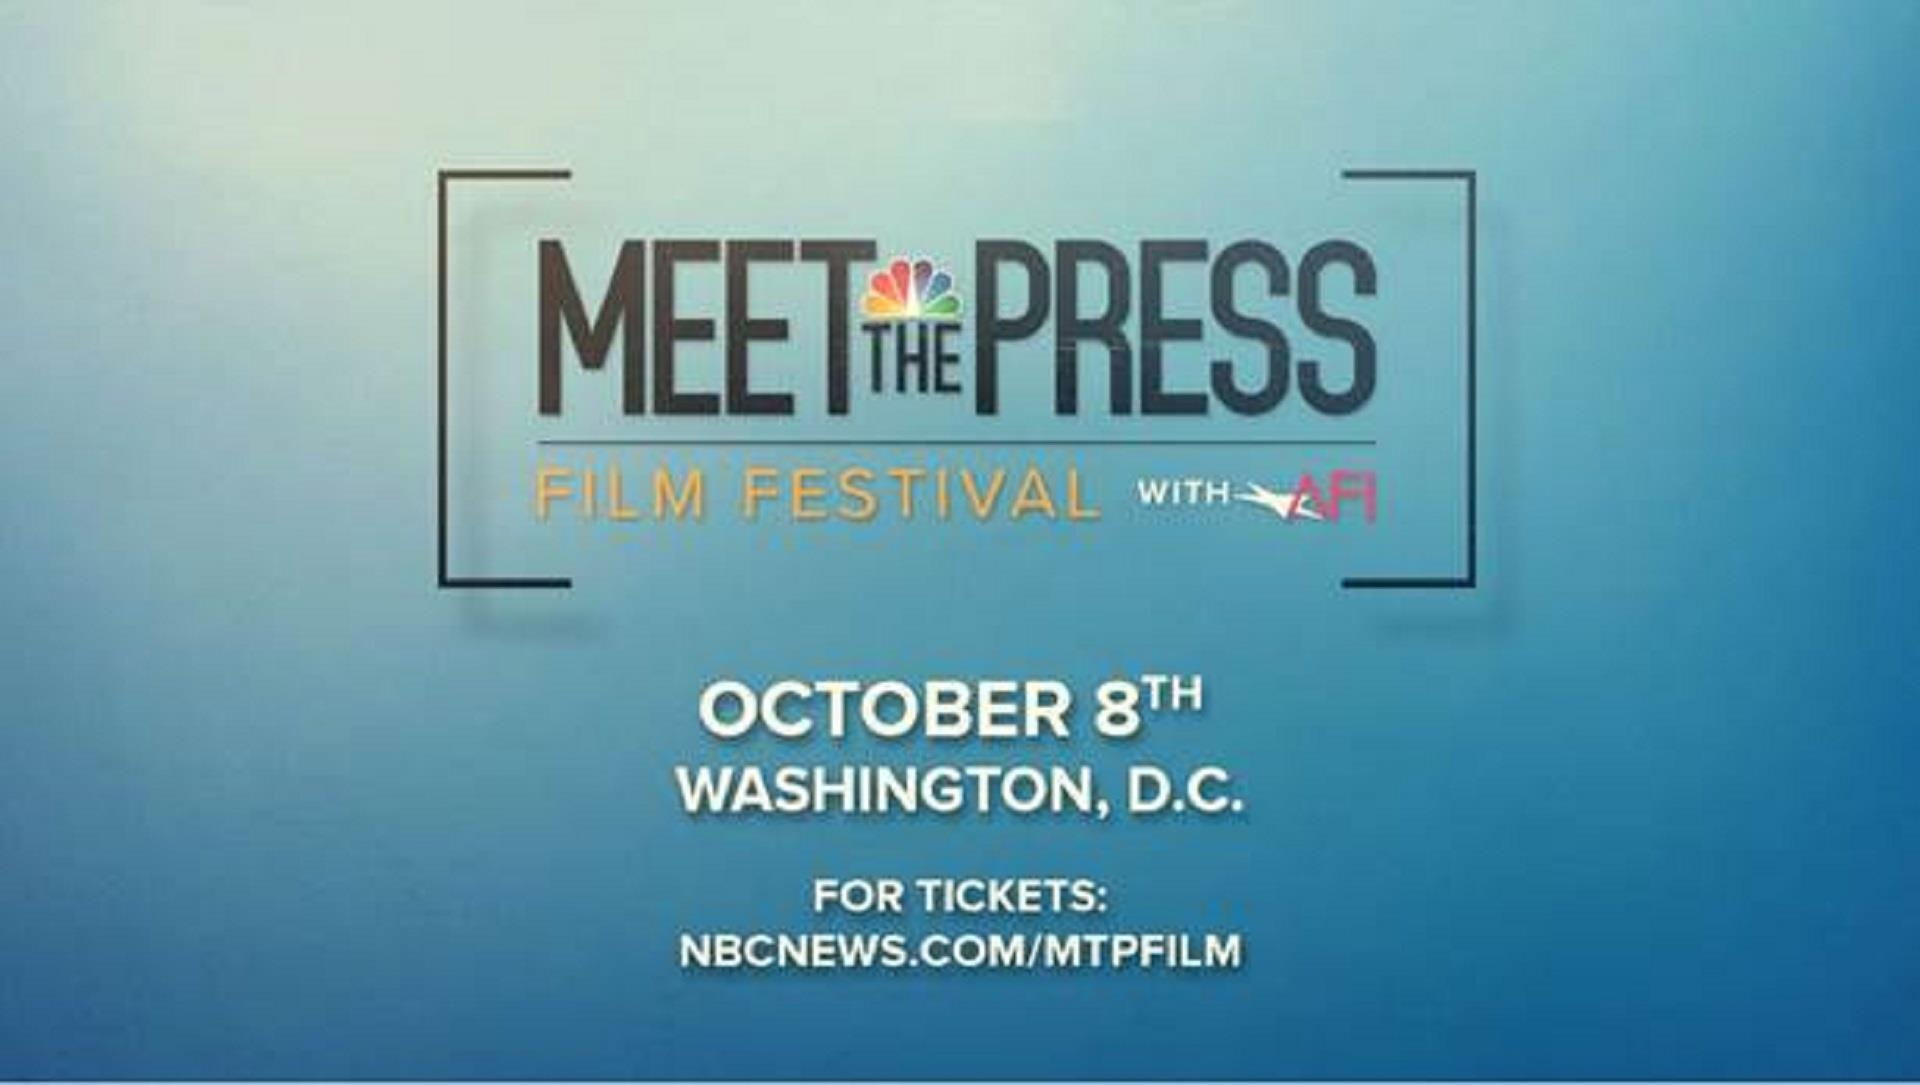 Meet the press film festival with afi tackles key issues ahead of meet the press film festival with afi tackles key issues ahead of midterms m4hsunfo